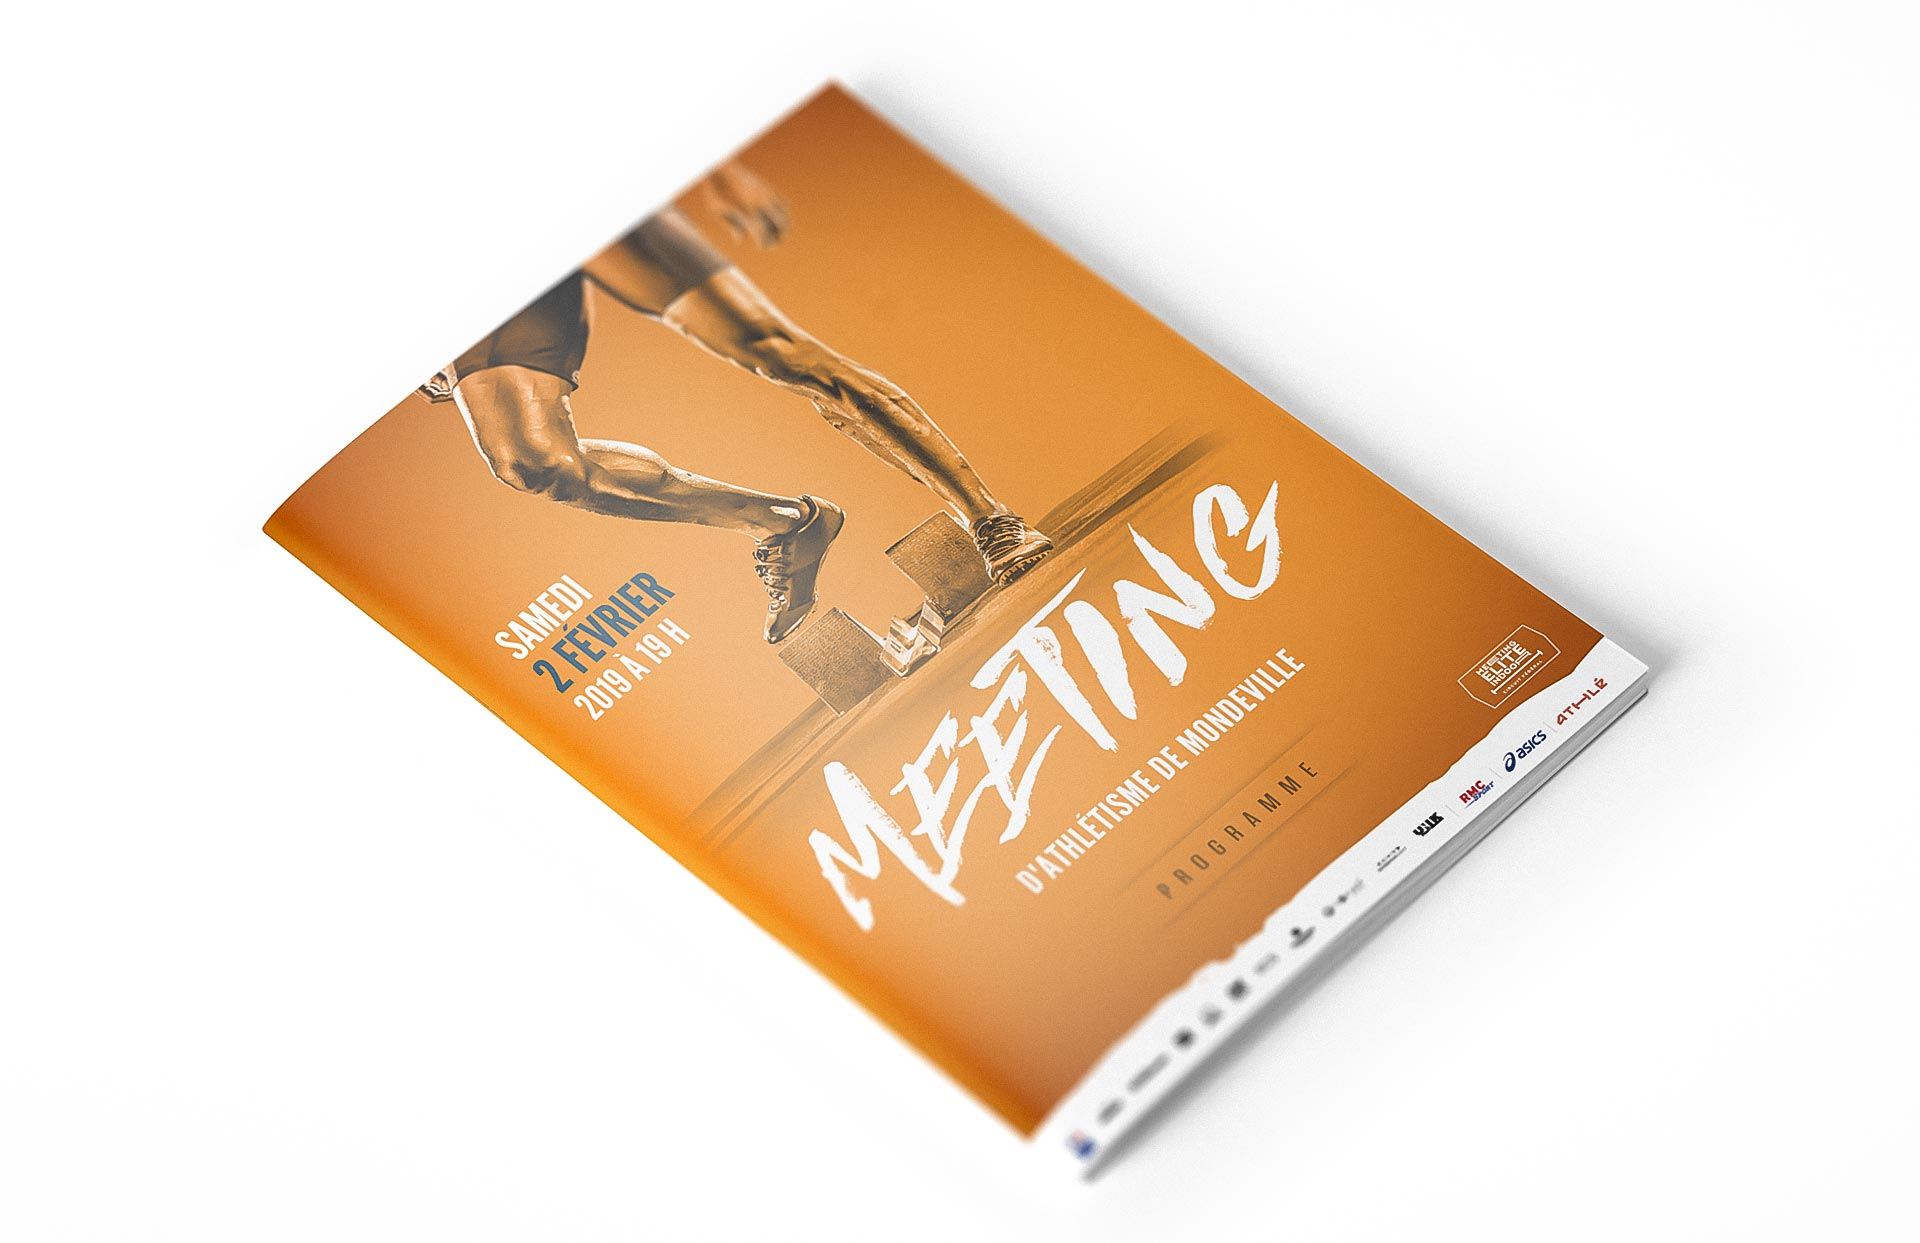 Programme Meeting d'athlétisme